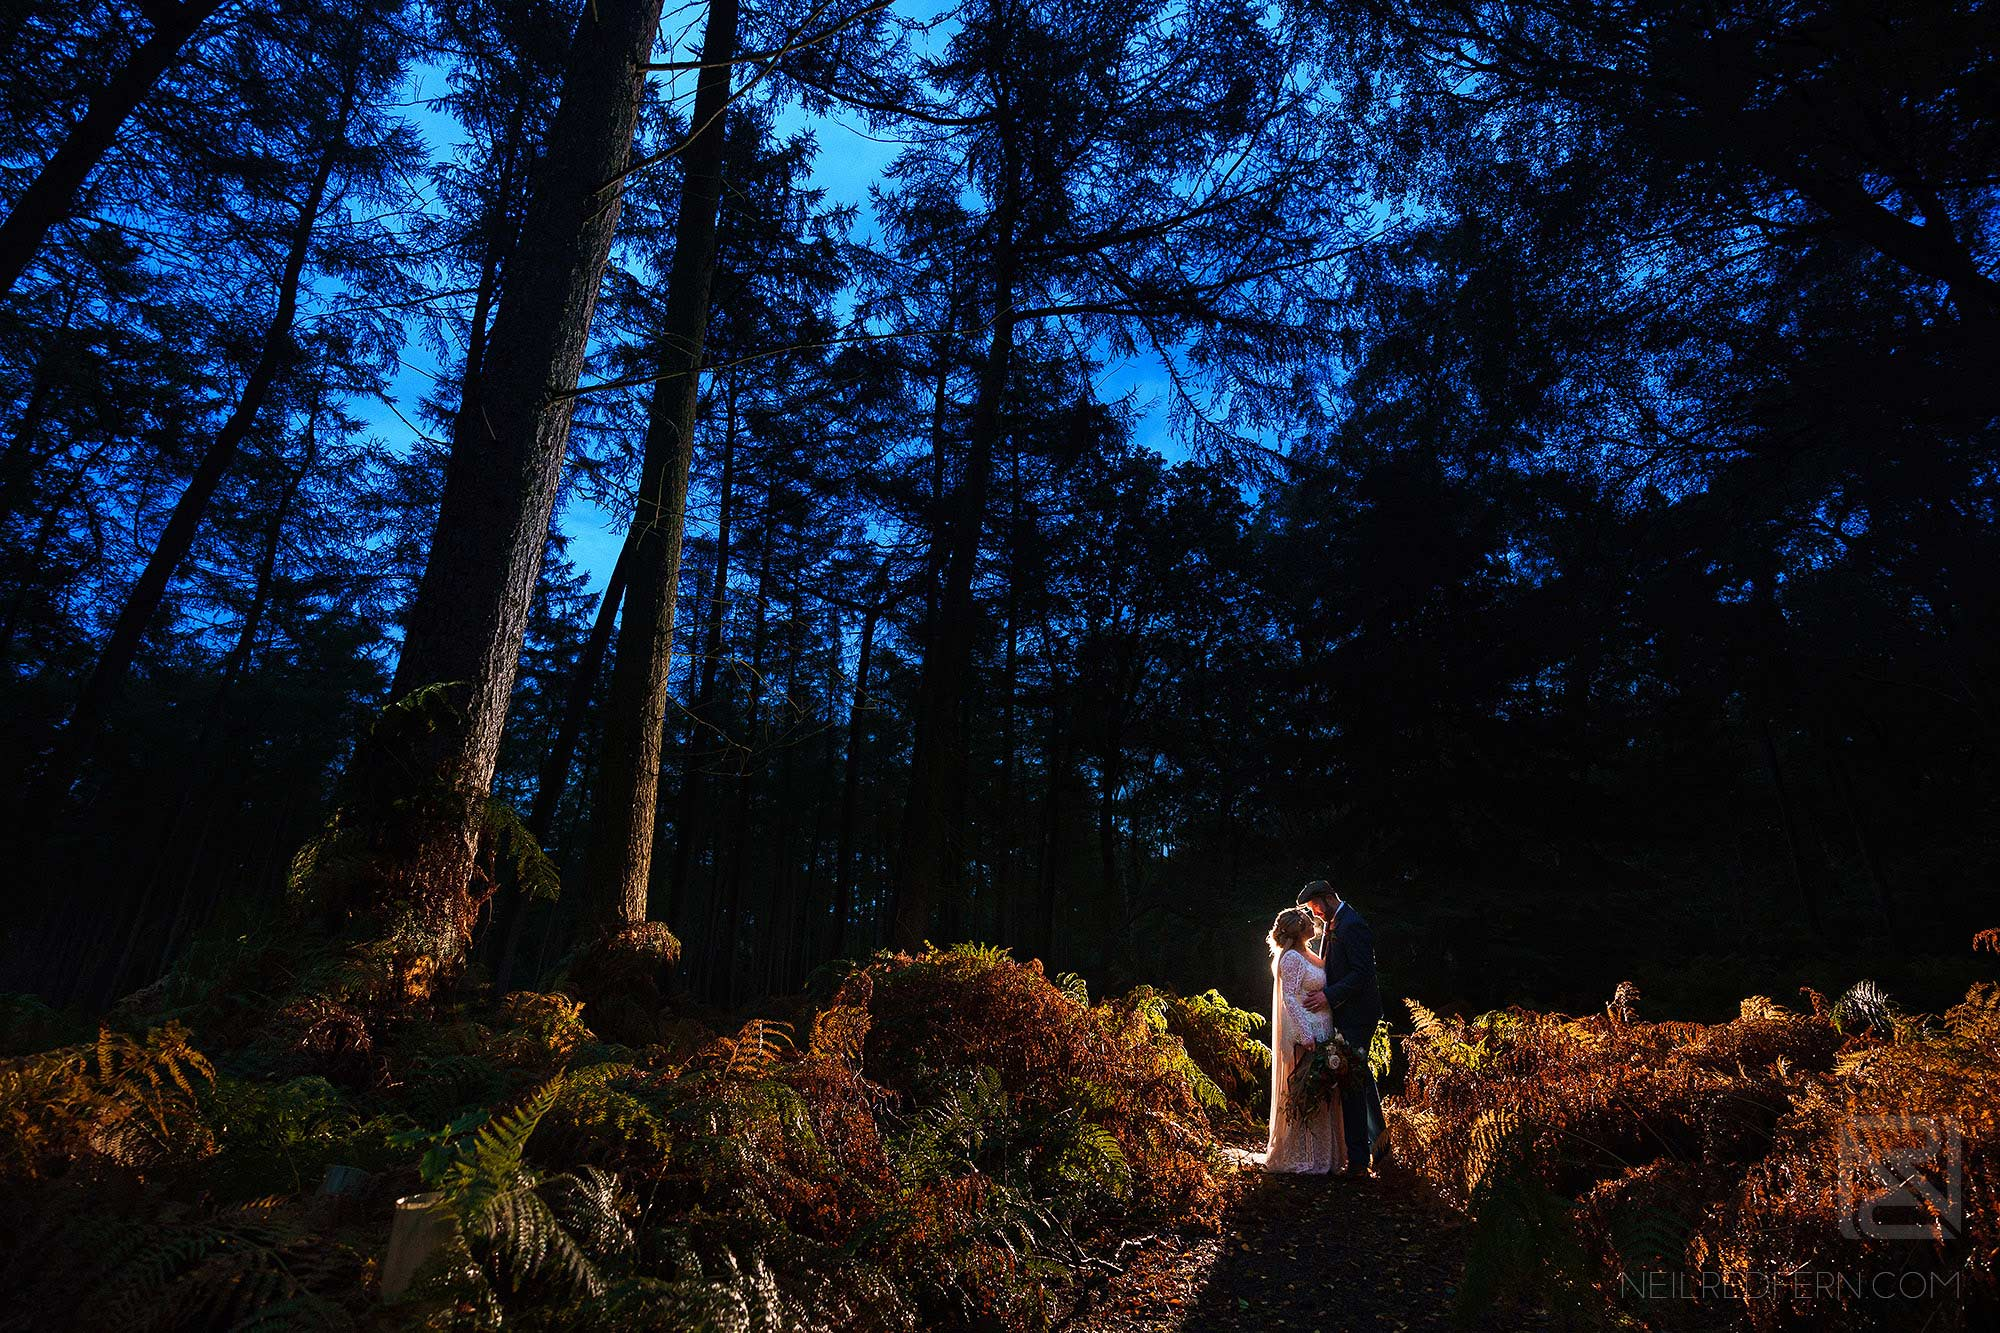 creative night time portrait of bride and groom in forest